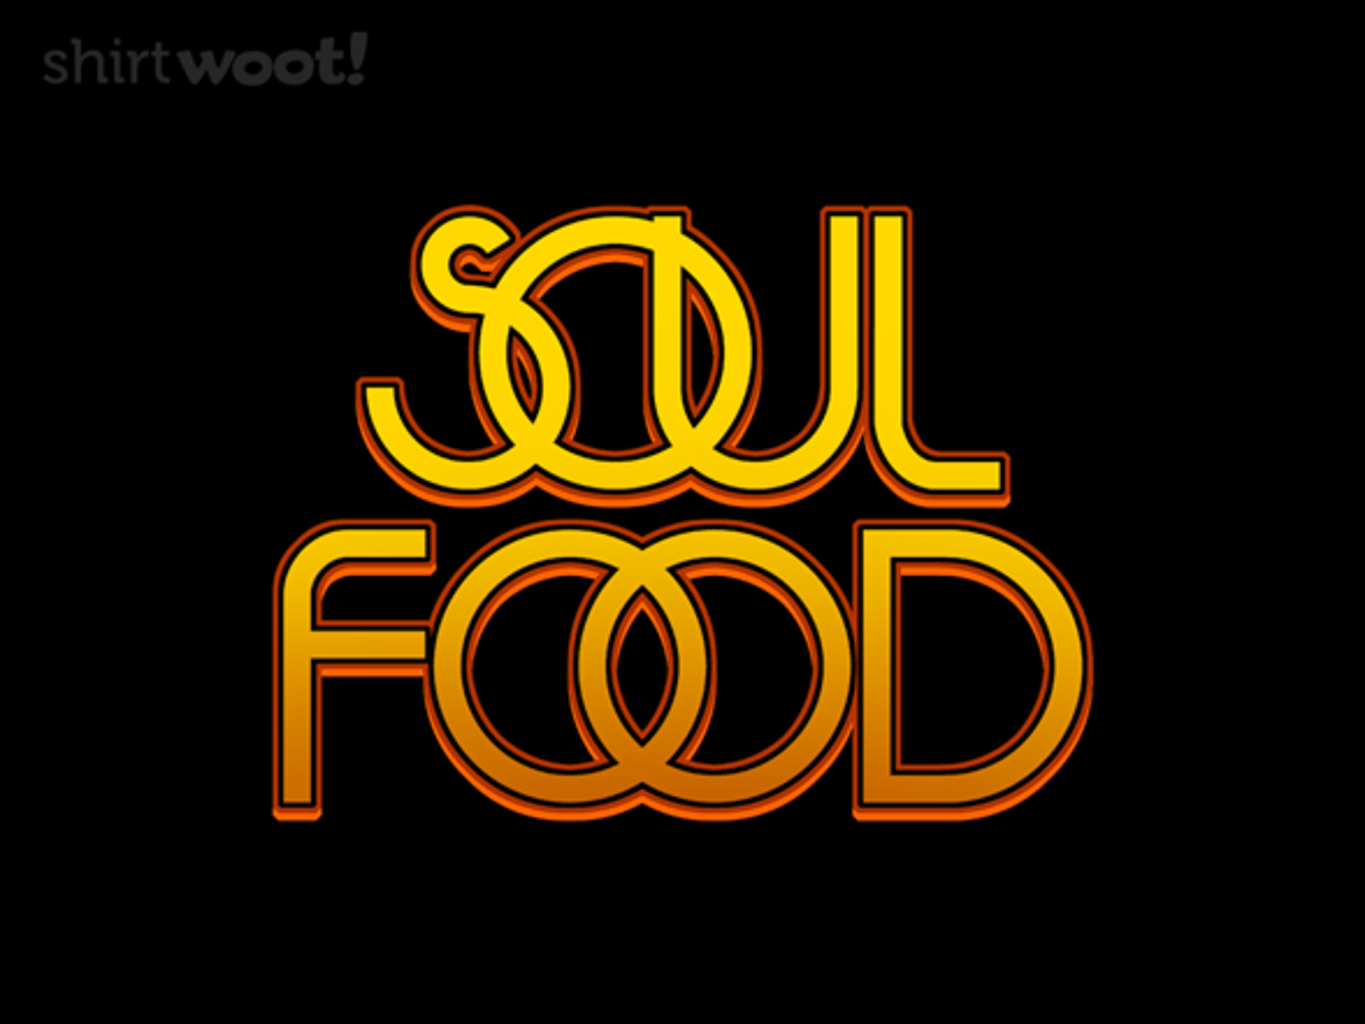 Woot!: Soul Food - $15.00 + Free shipping